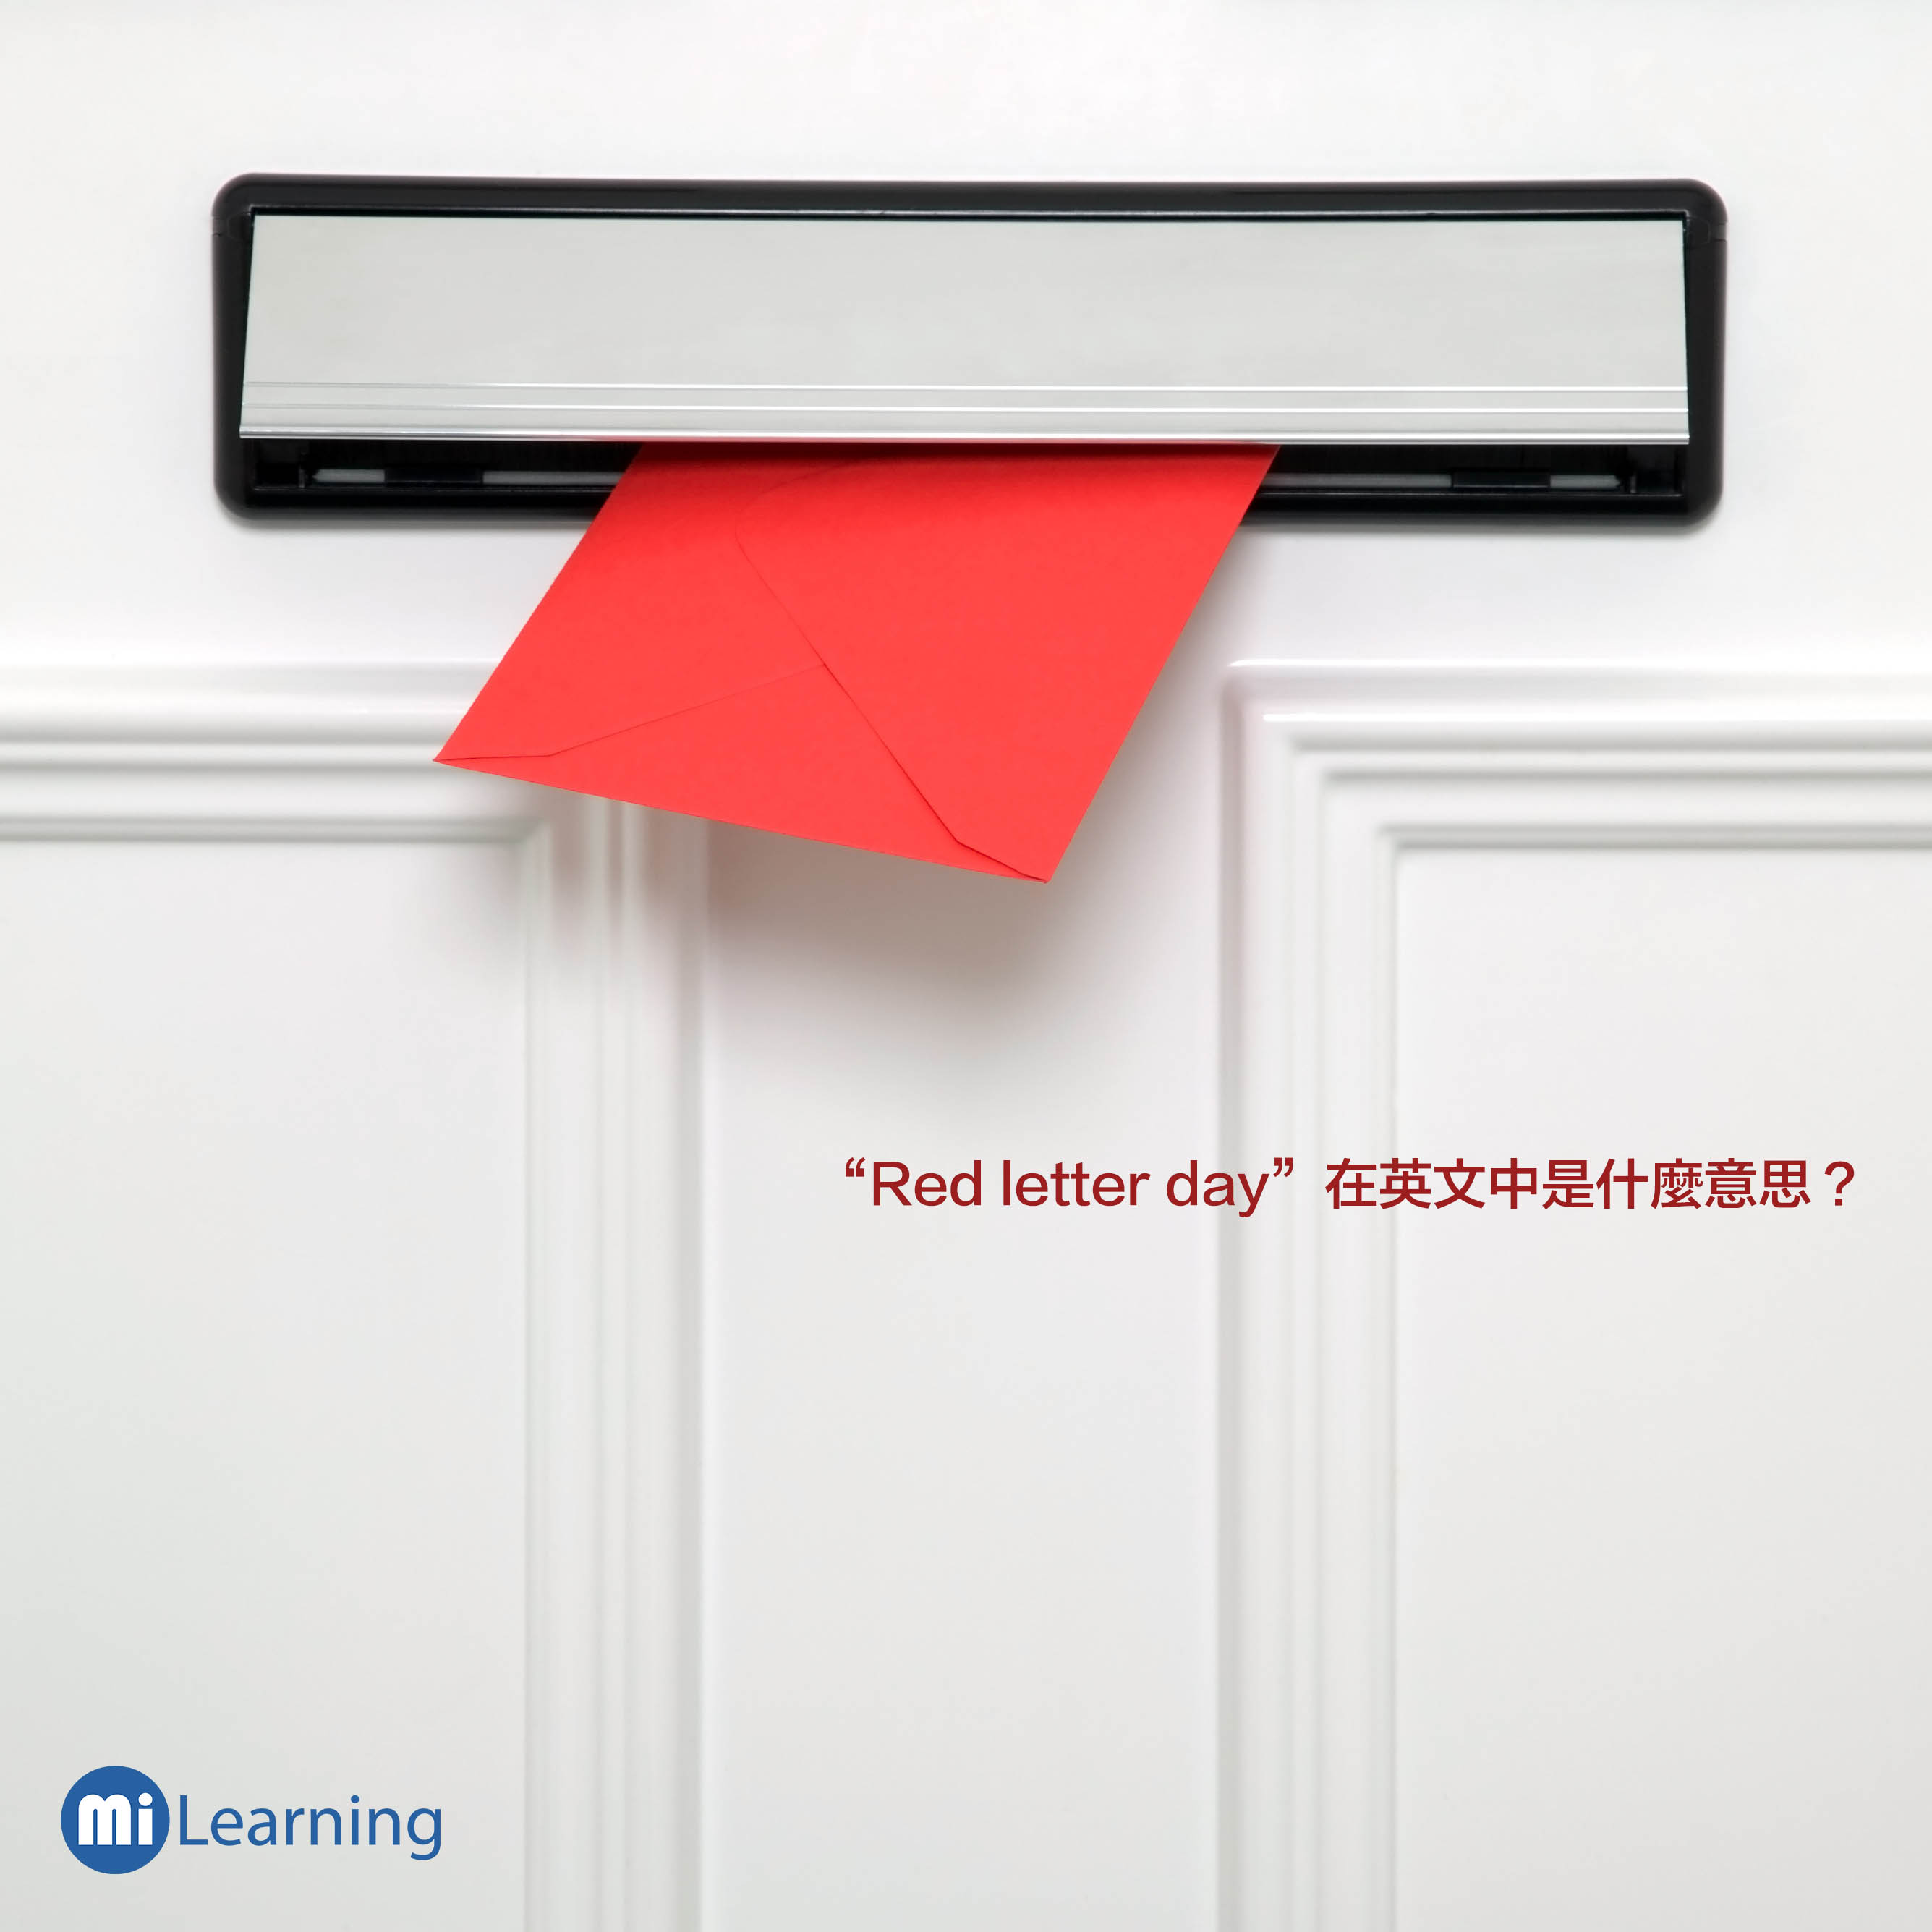 red letter day quot letter day quot 在英文中是什麼意思 mi learning 24235